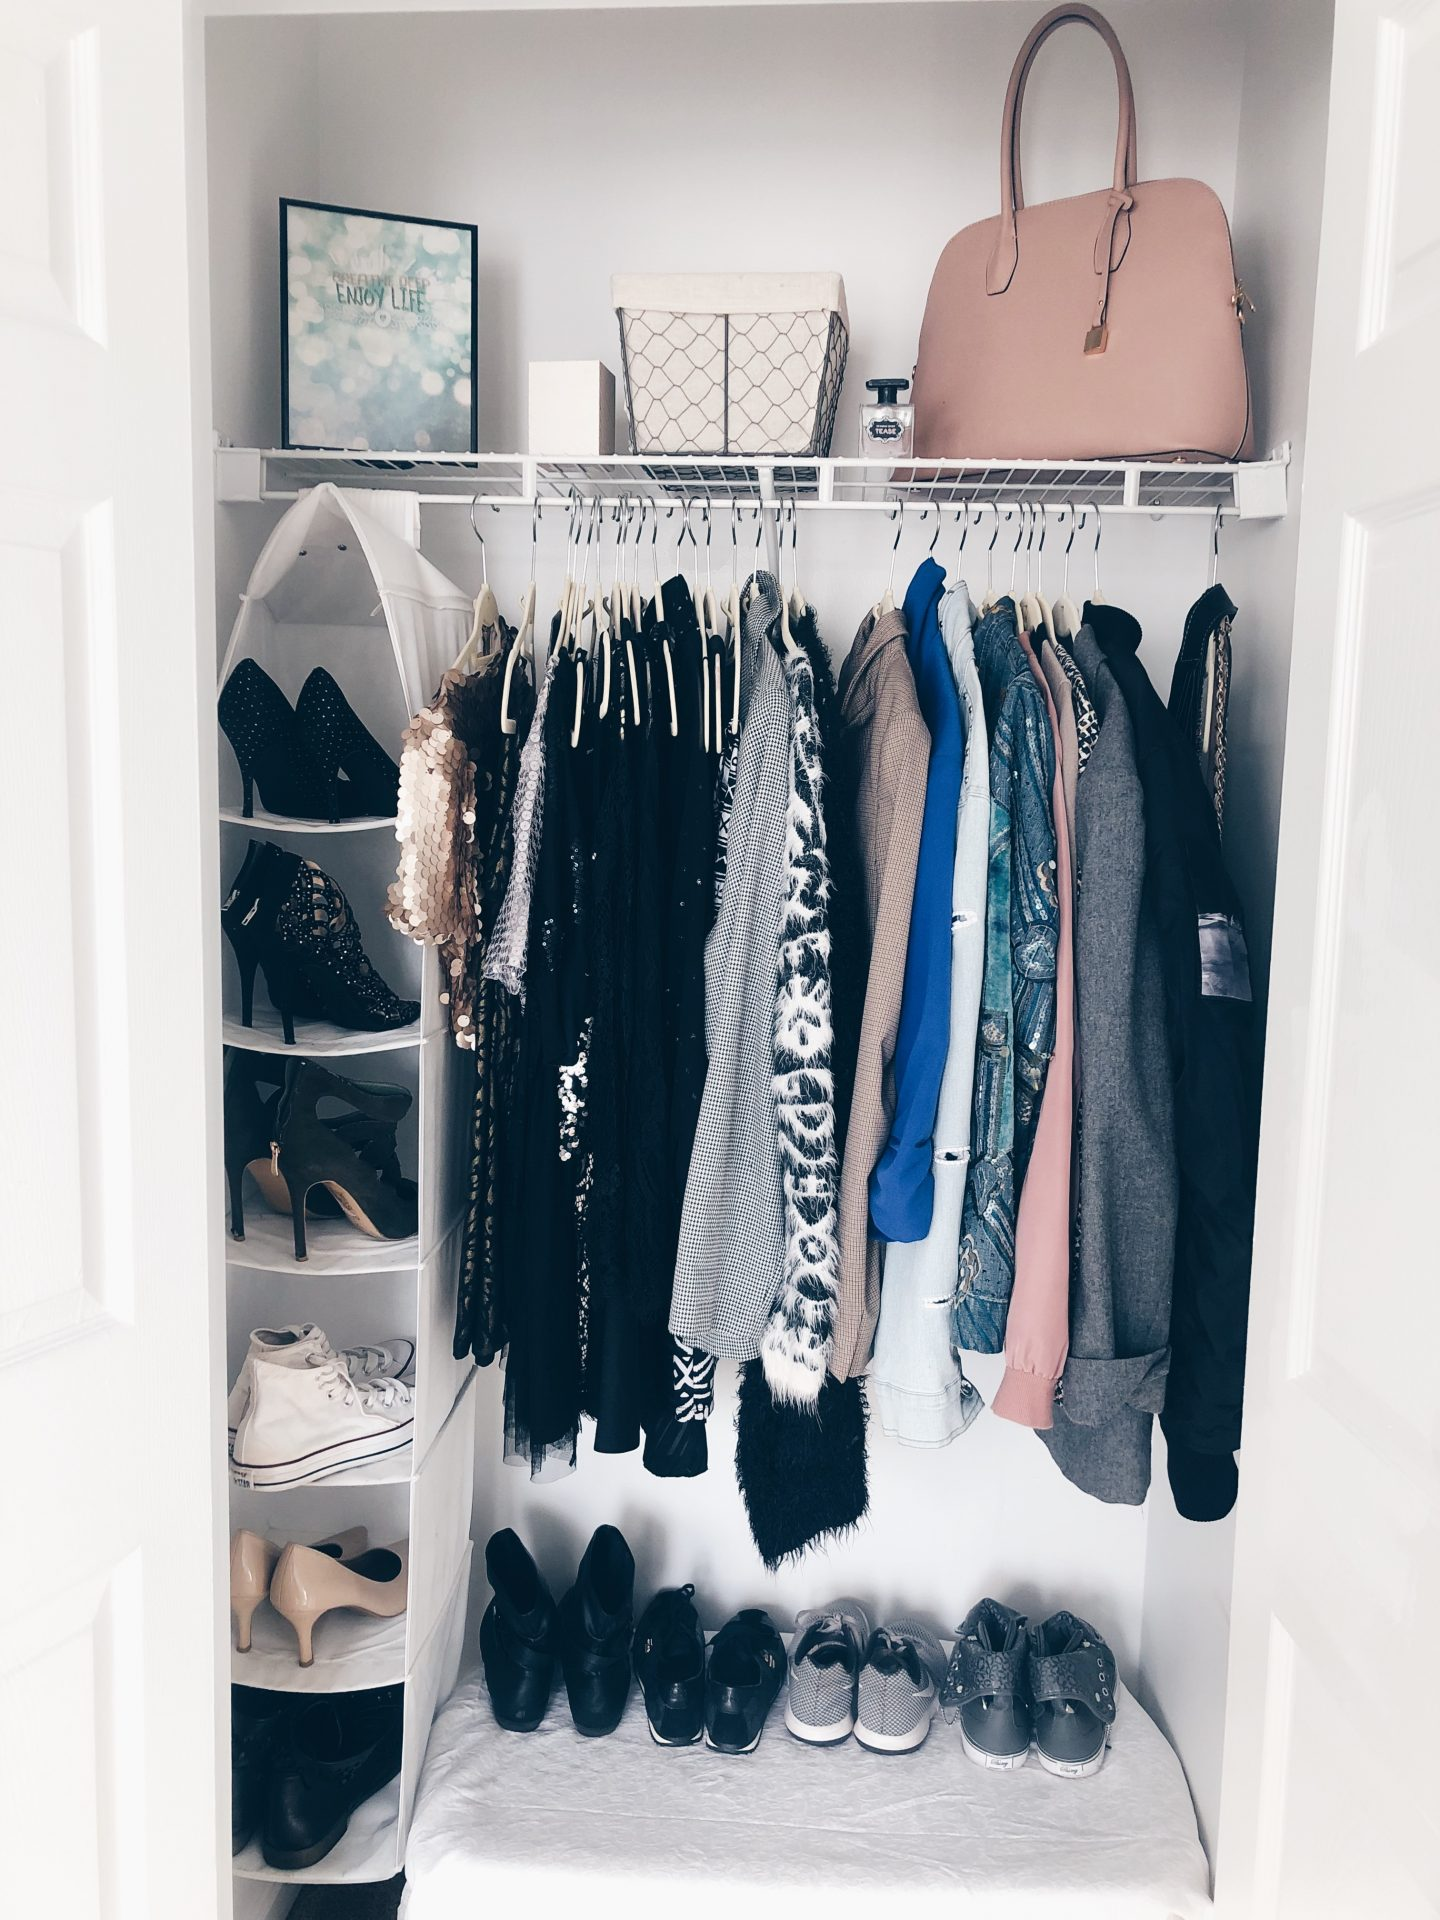 How To De-clutter And Organize Your Closet